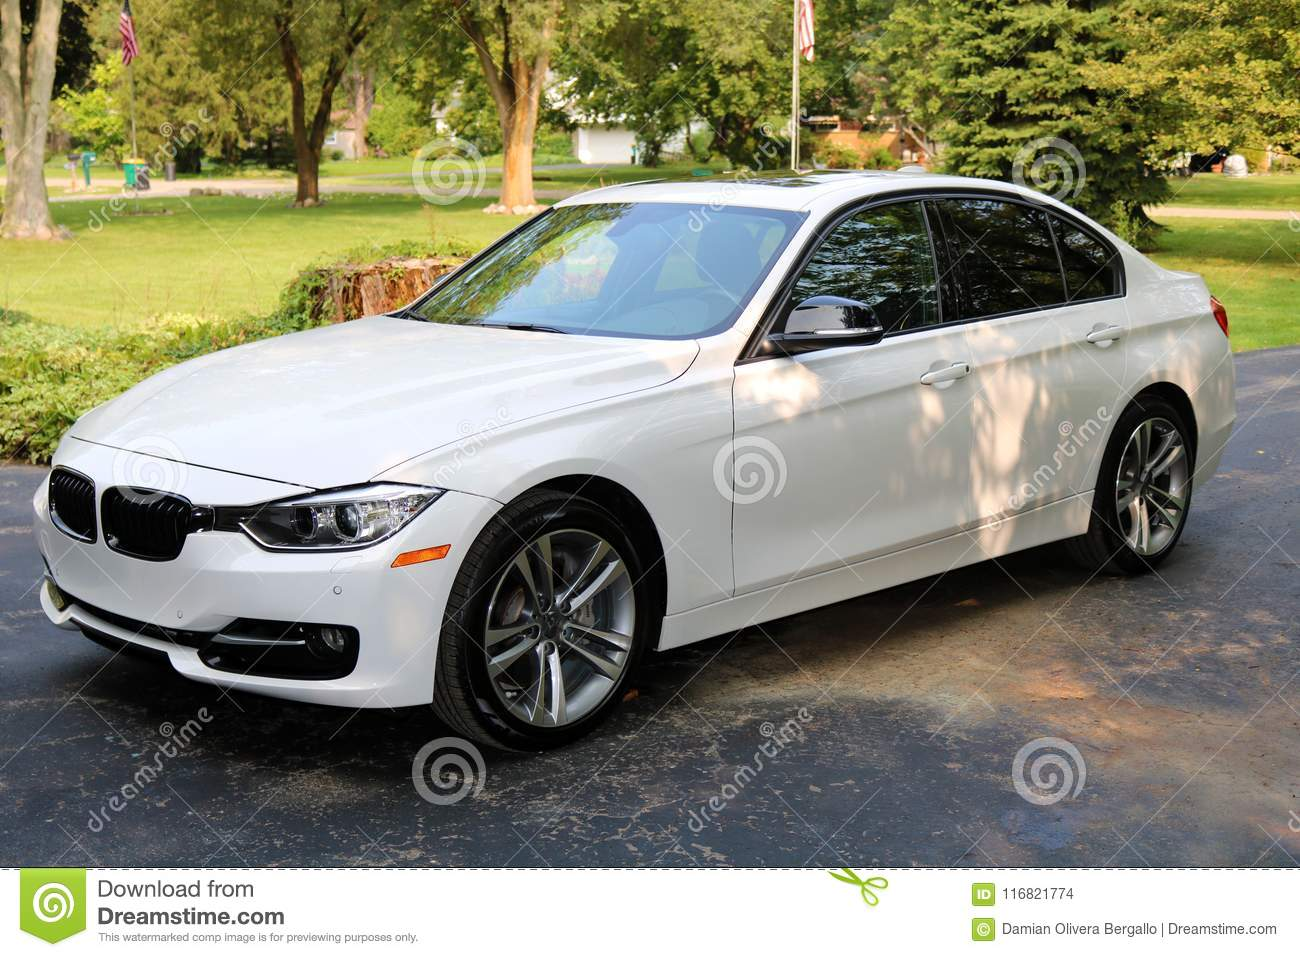 2018 Bmw 350i White Super Charge With 350 Horse Power Luxury